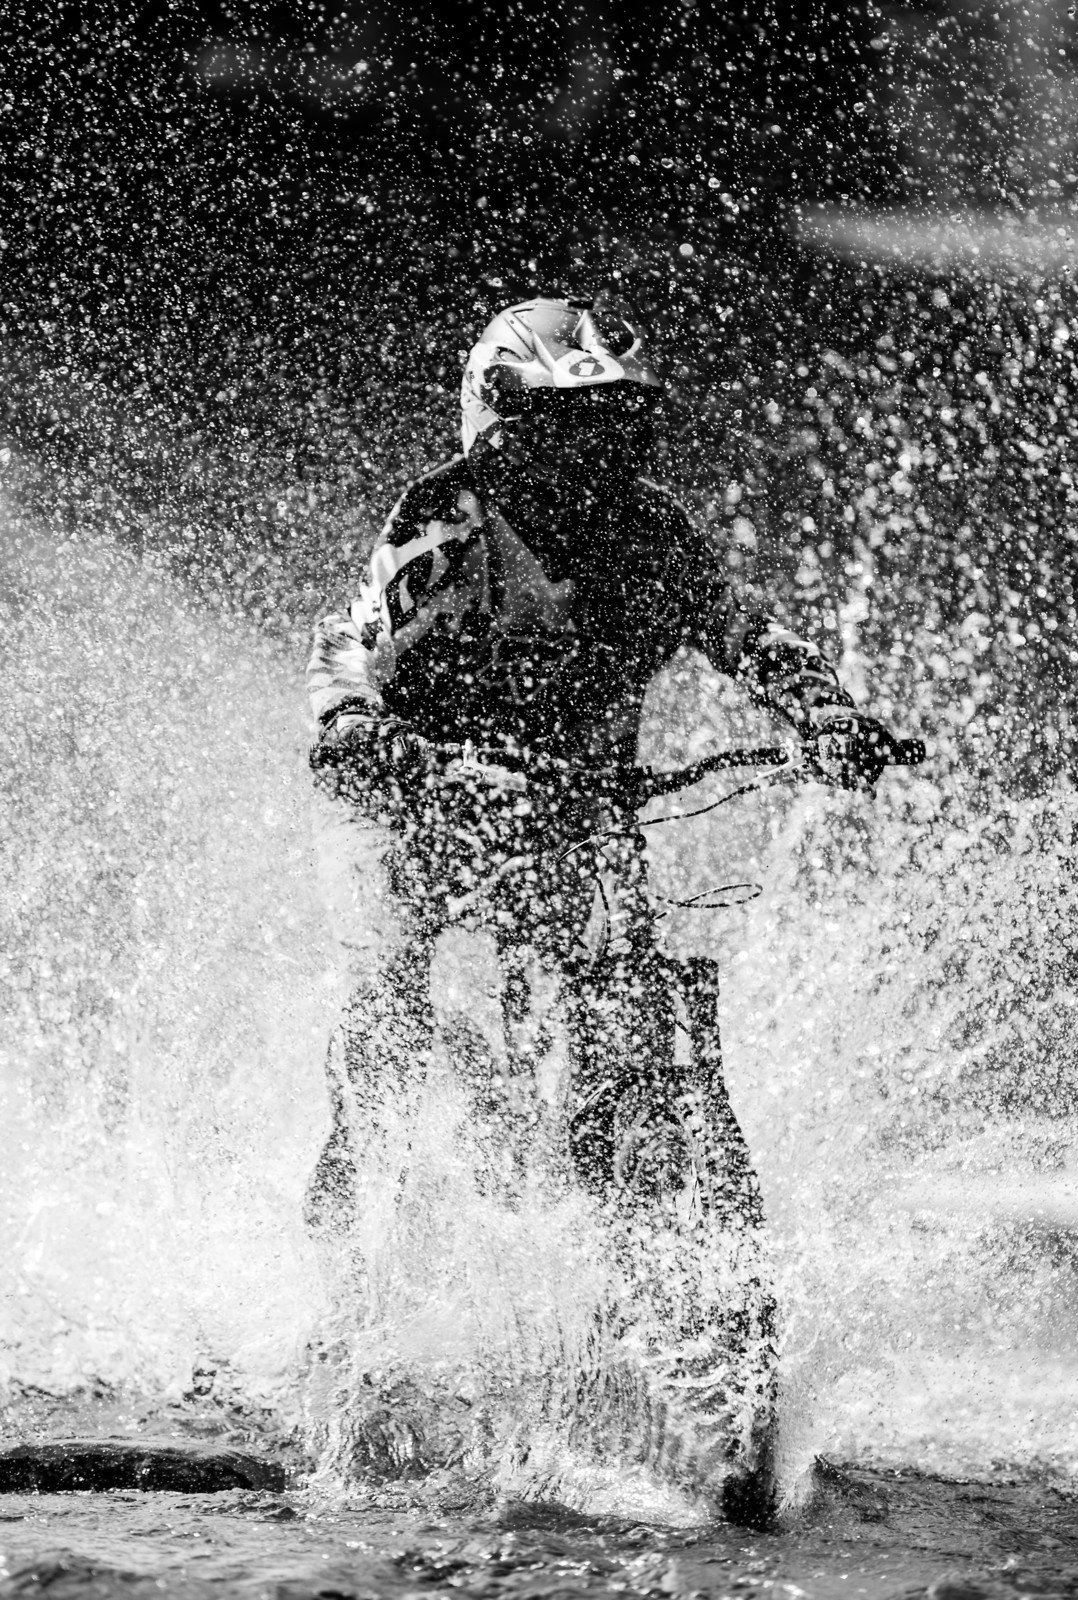 River Splashes by Maciej Olszewski - MouflonsRiders - Mountain Biking Pictures - Vital MTB